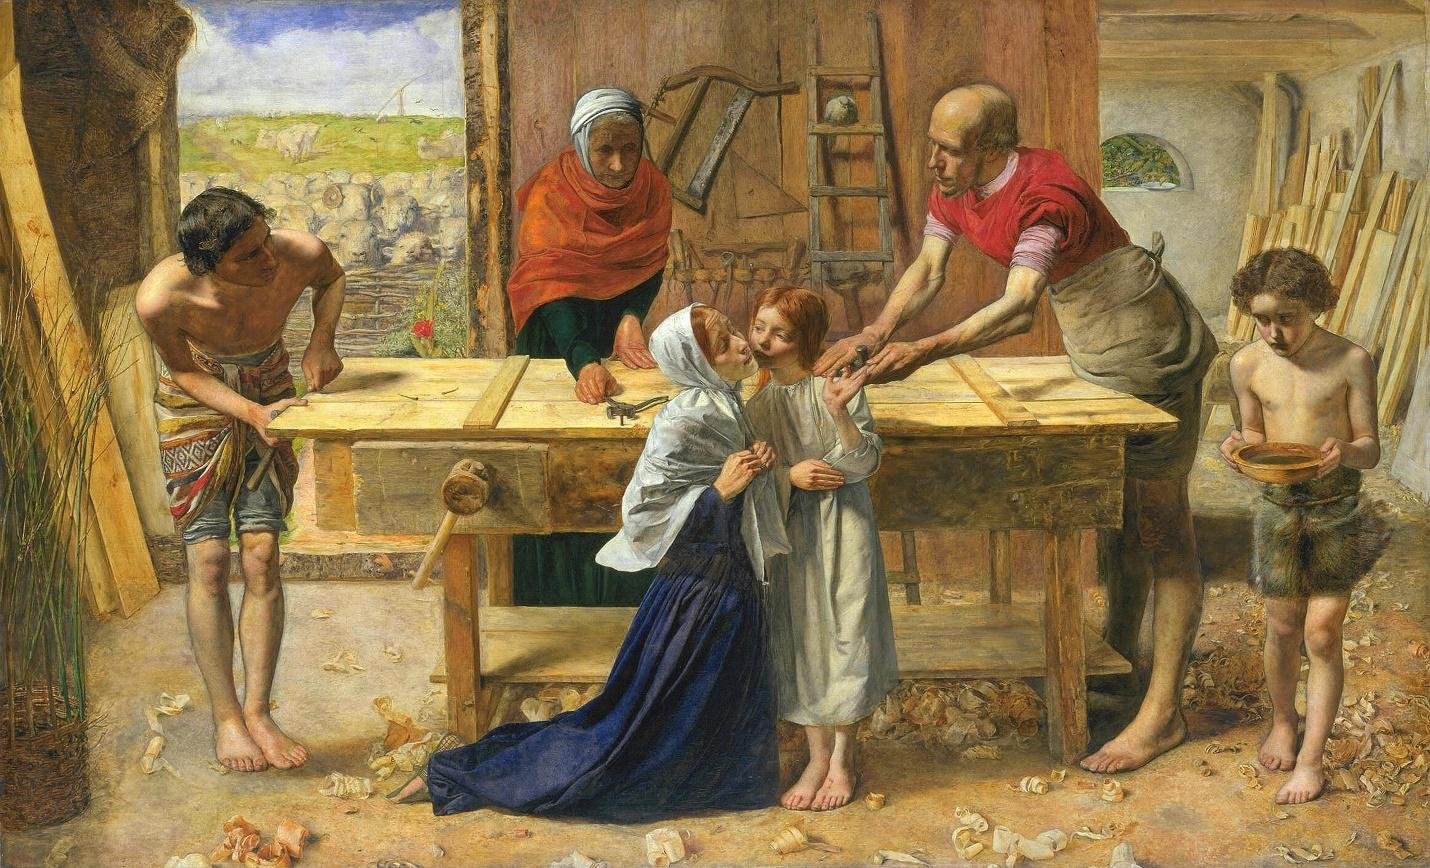 Lessons from the Workshop of Saint Joseph13. Returning Failure